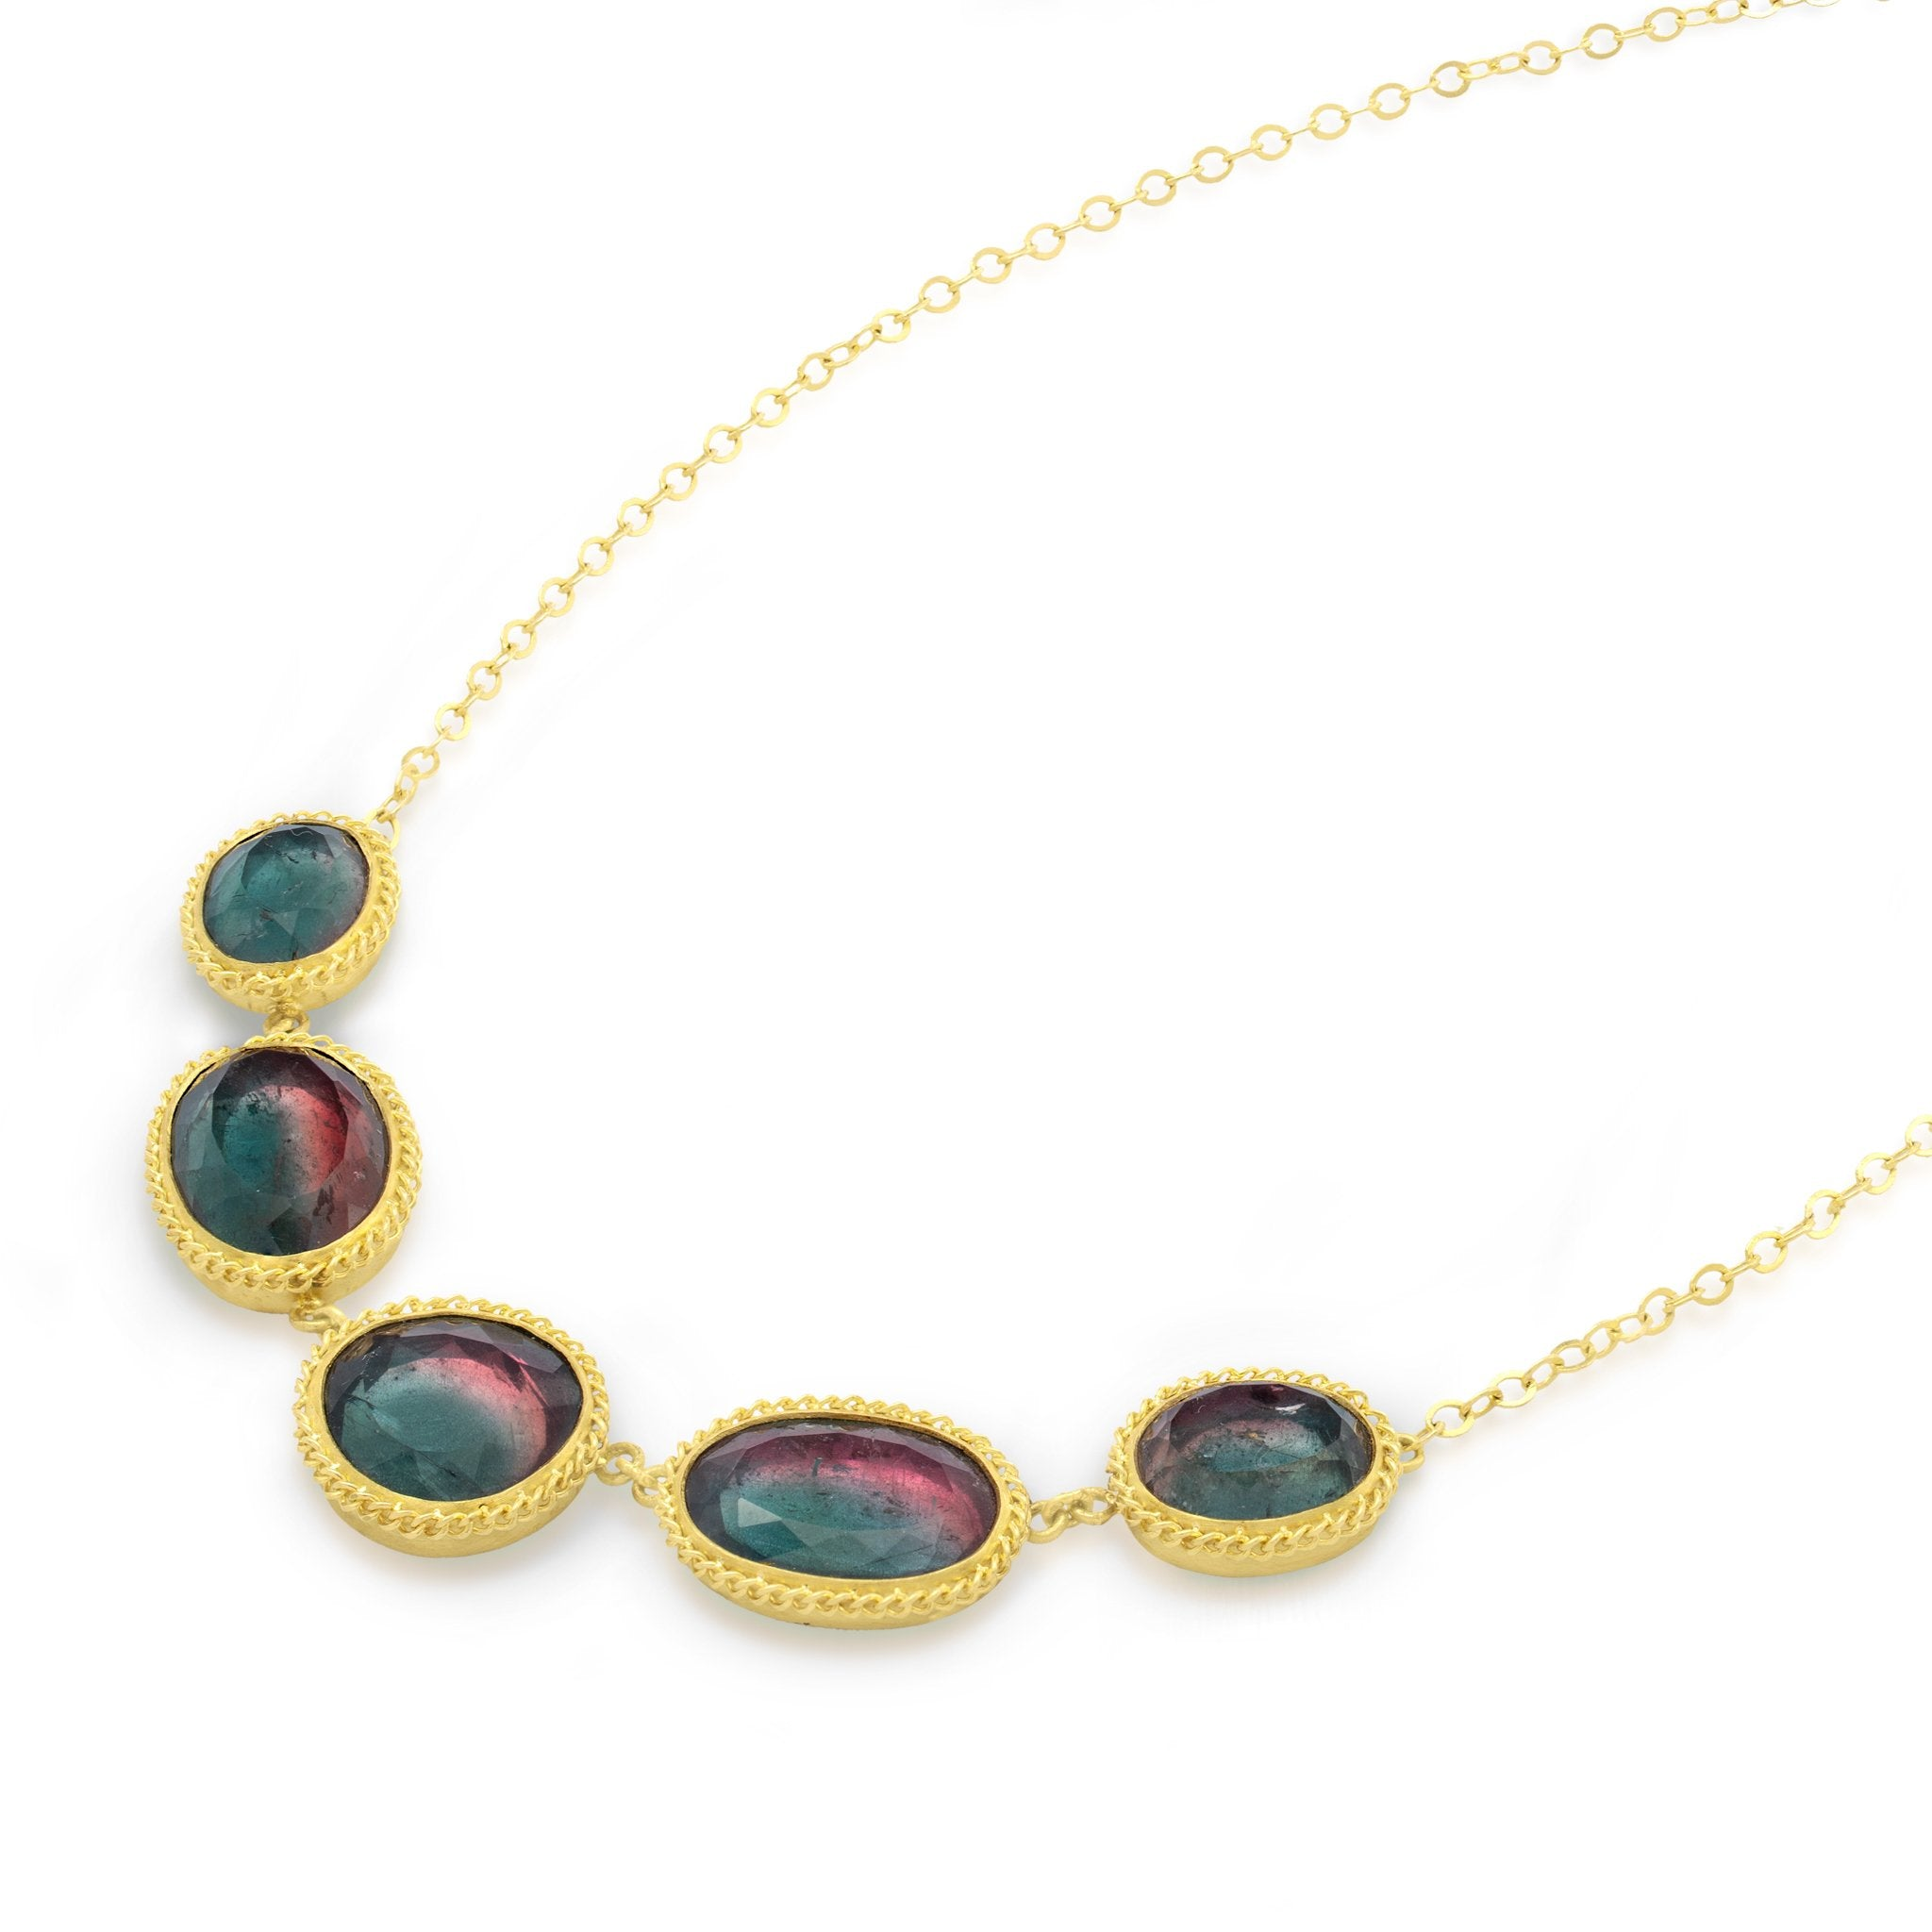 Amali-Bi-Color Tourmaline Pebble Necklace